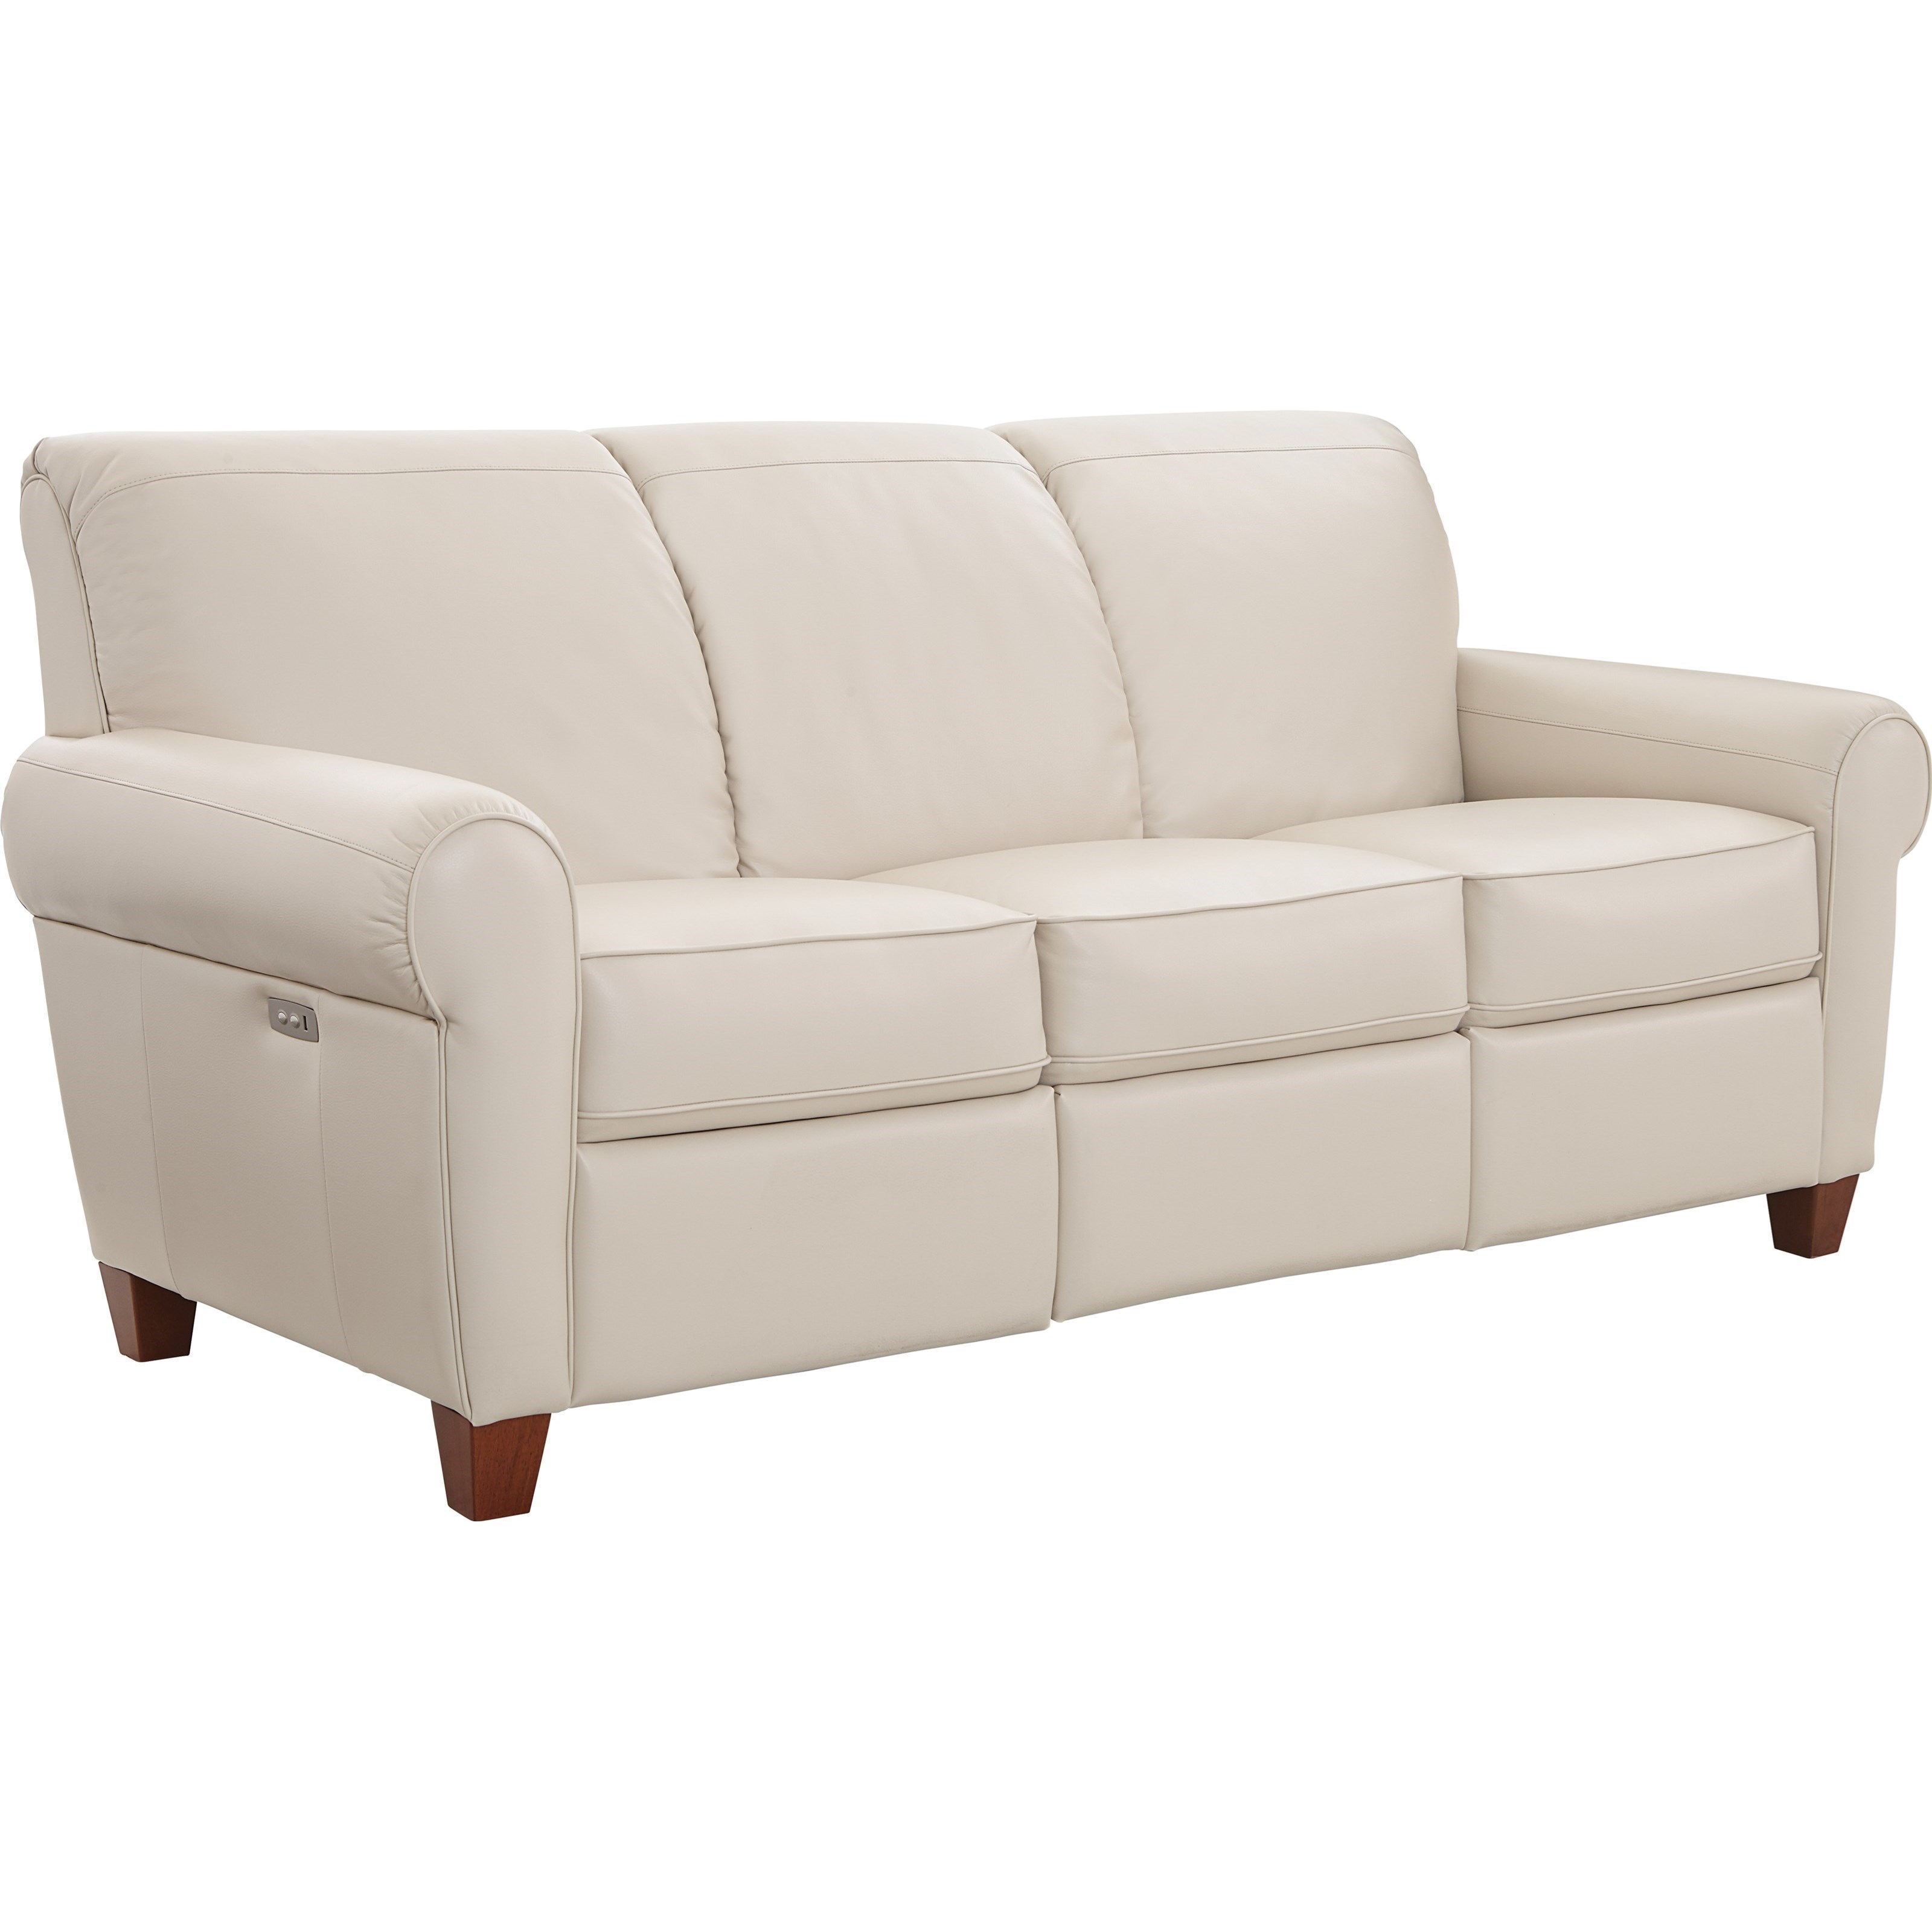 Attractive La Z Boy BennettDuo™ Reclining Sofa ...